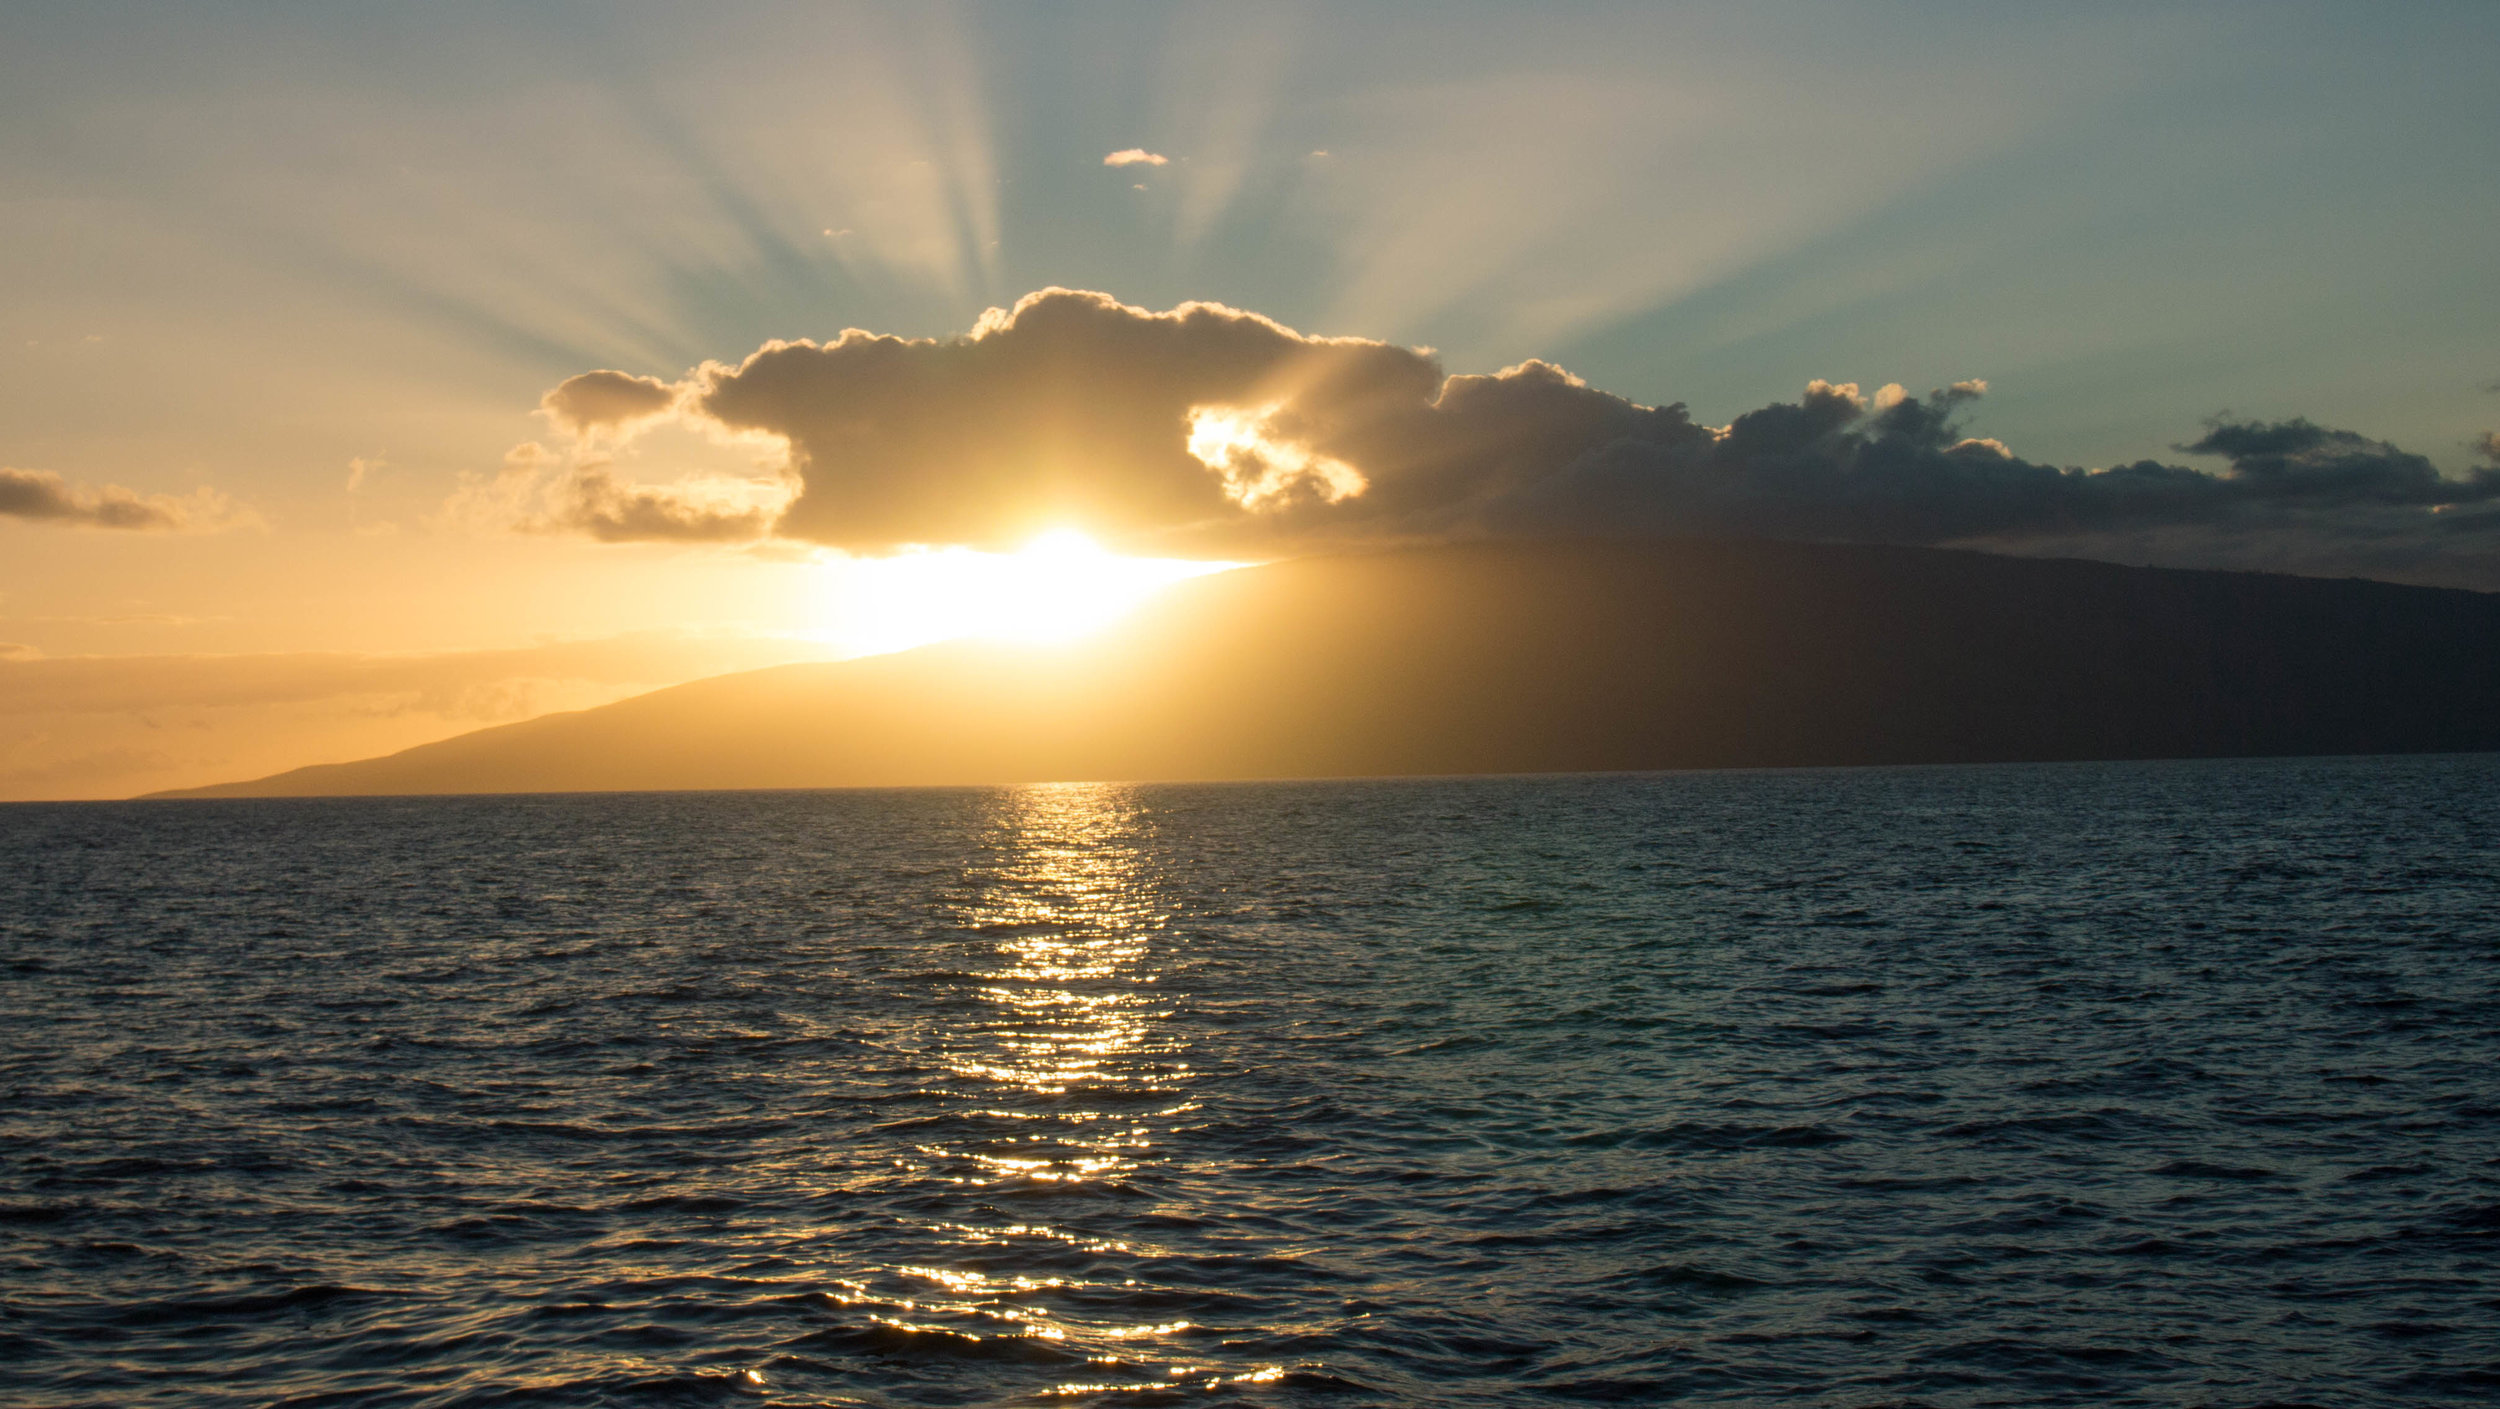 Sunset over Lanai from the boat